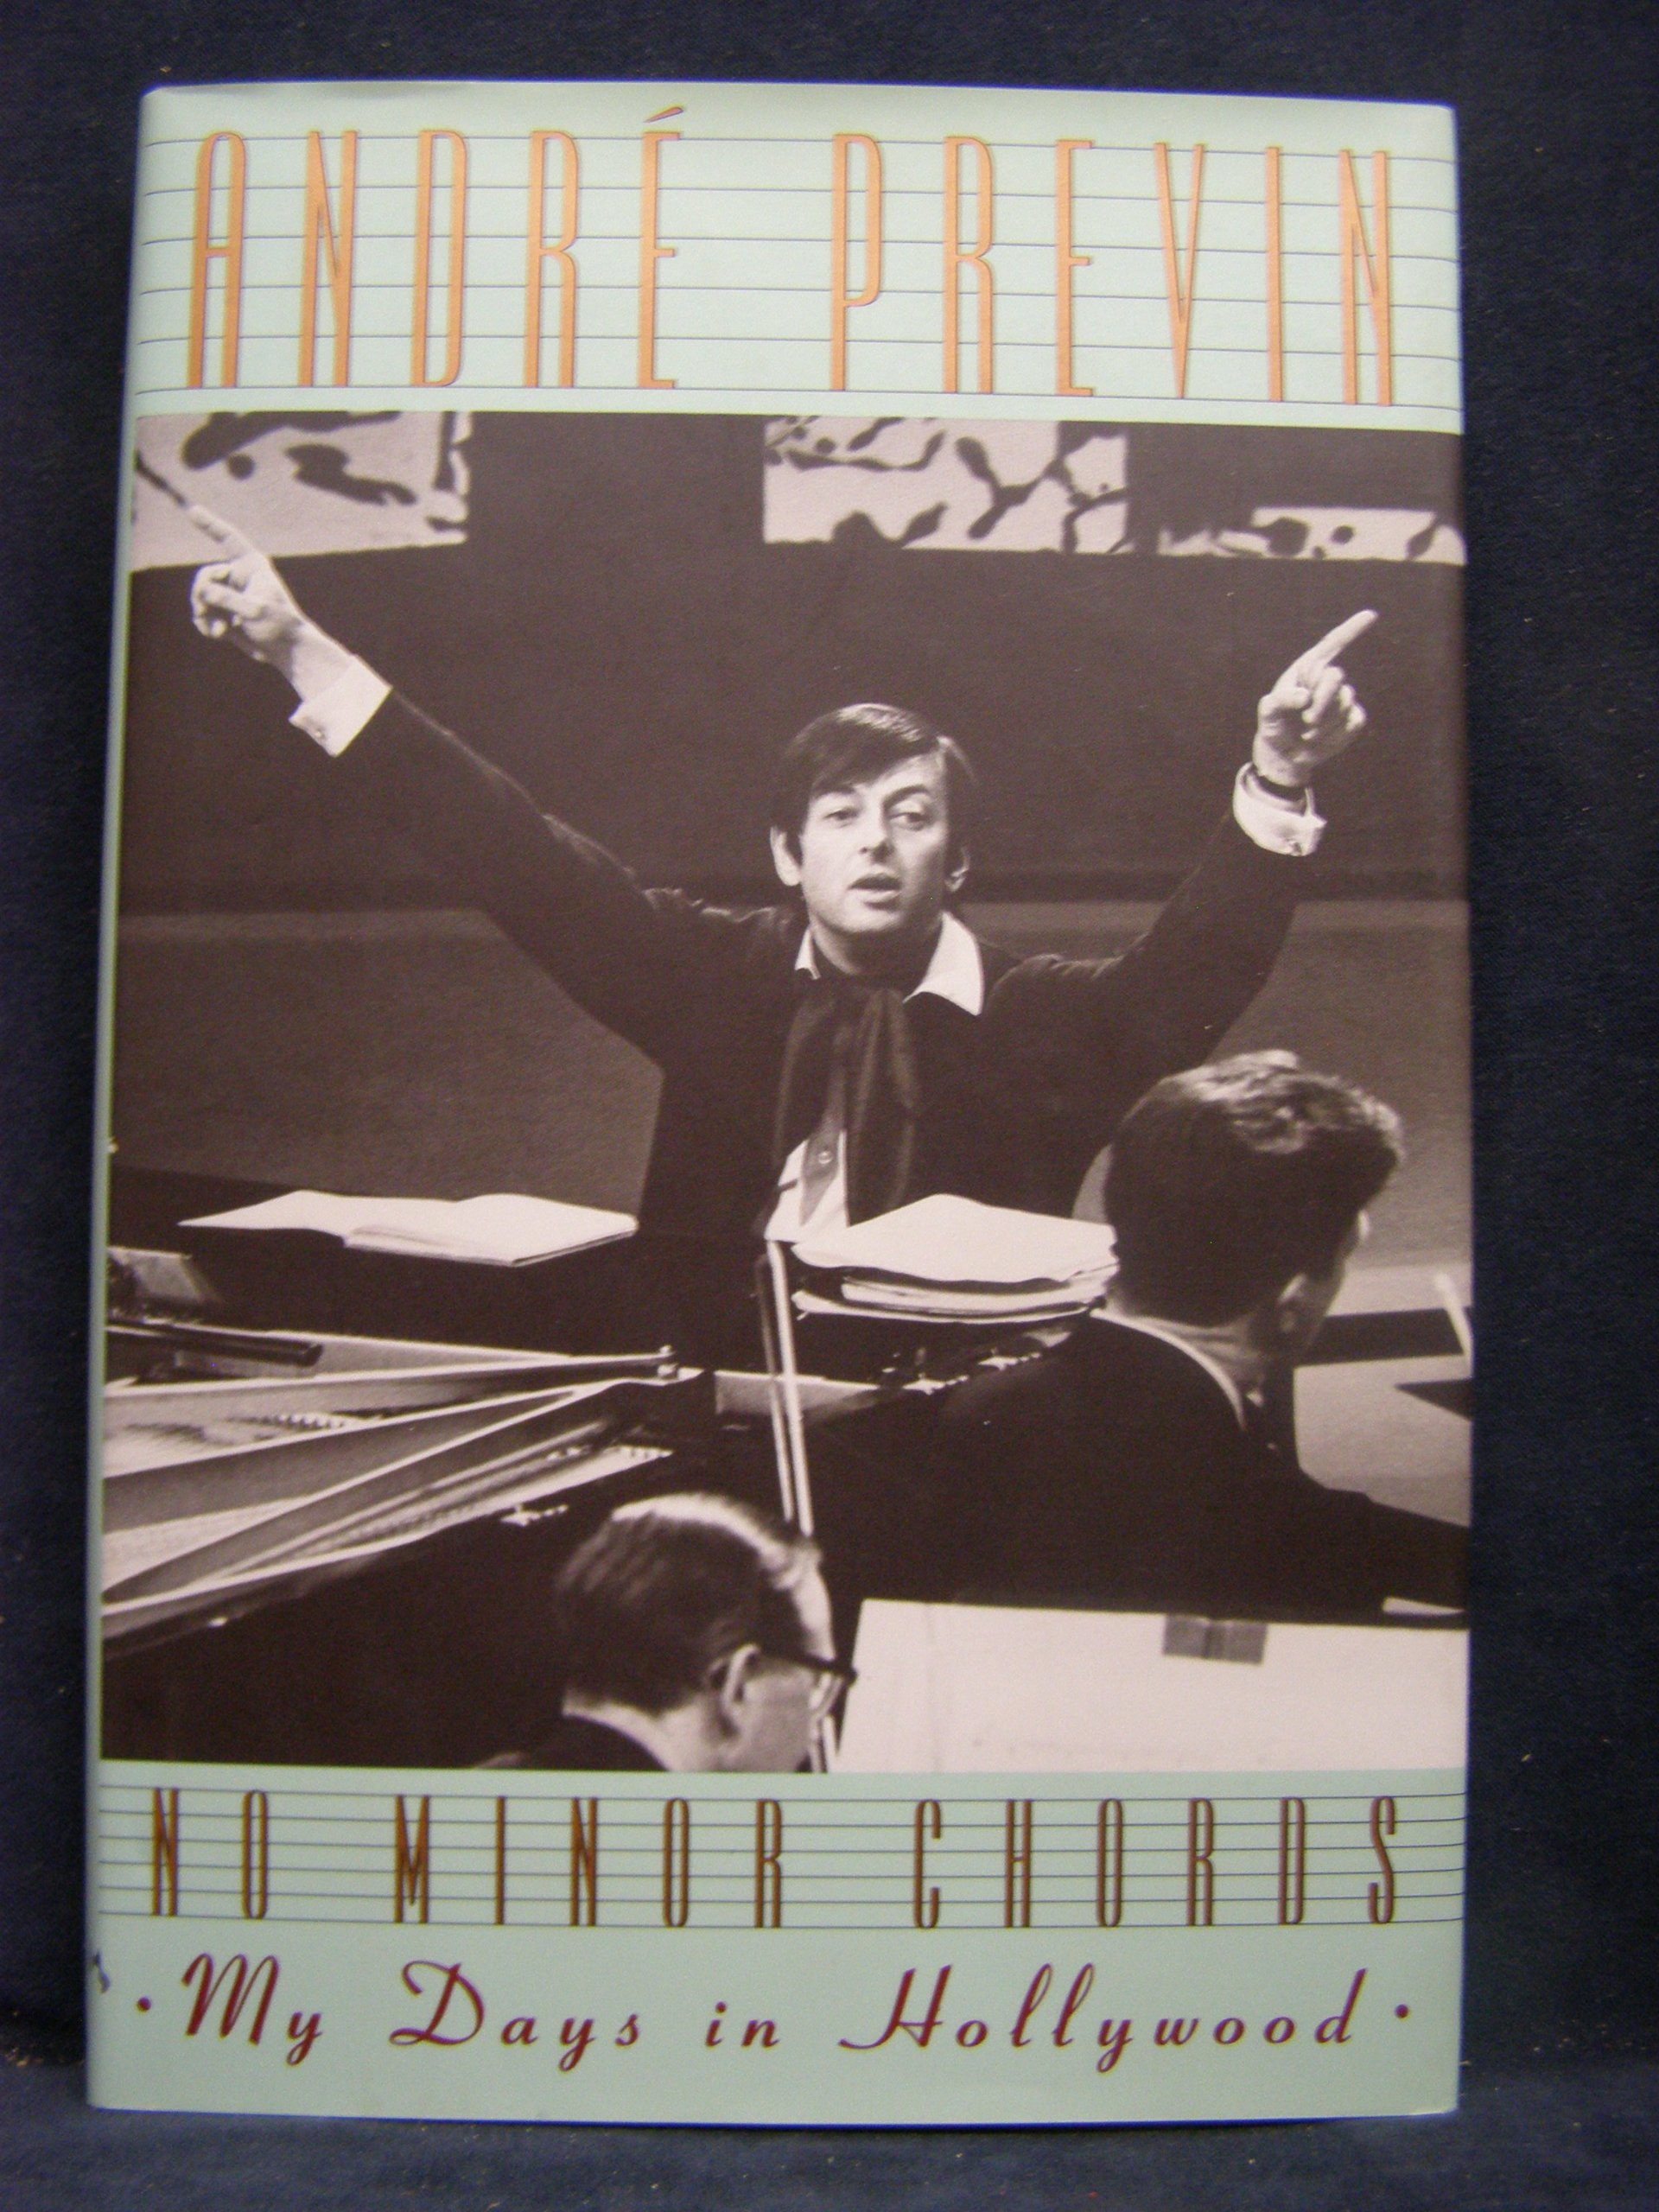 No minor chords my days in hollywood andre previn 9780385413411 amazon com books